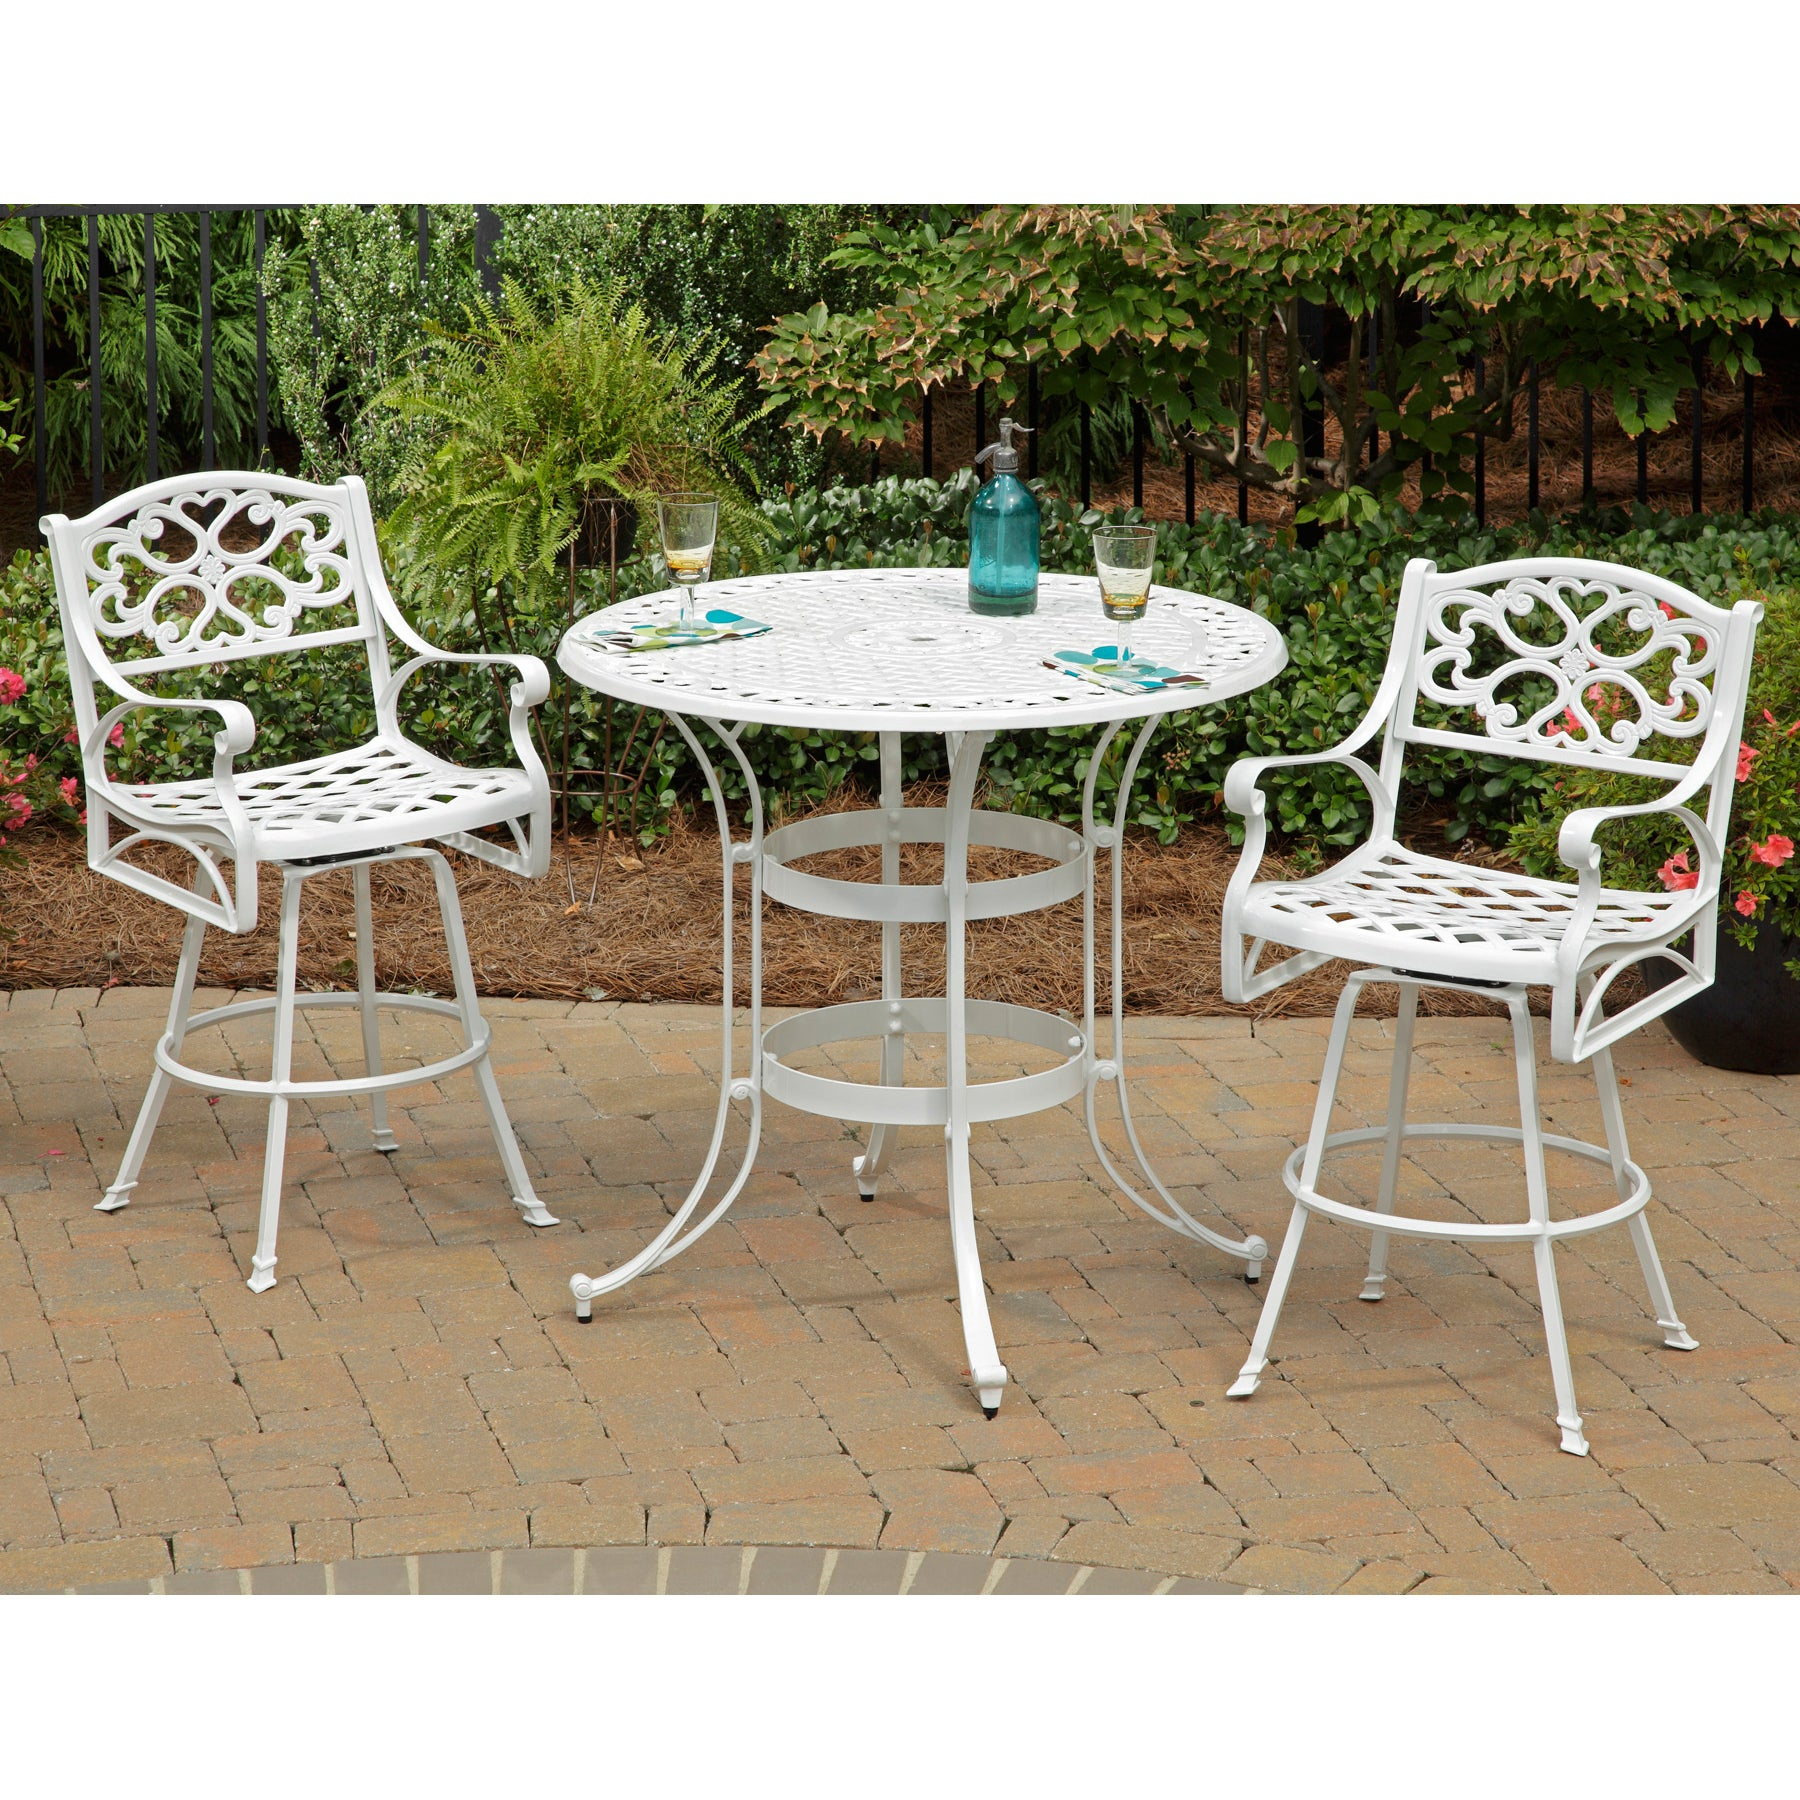 Overstock.com Home Styles Biscayne Cast Aluminum White 3-piece Patio Bistro Set at Sears.com